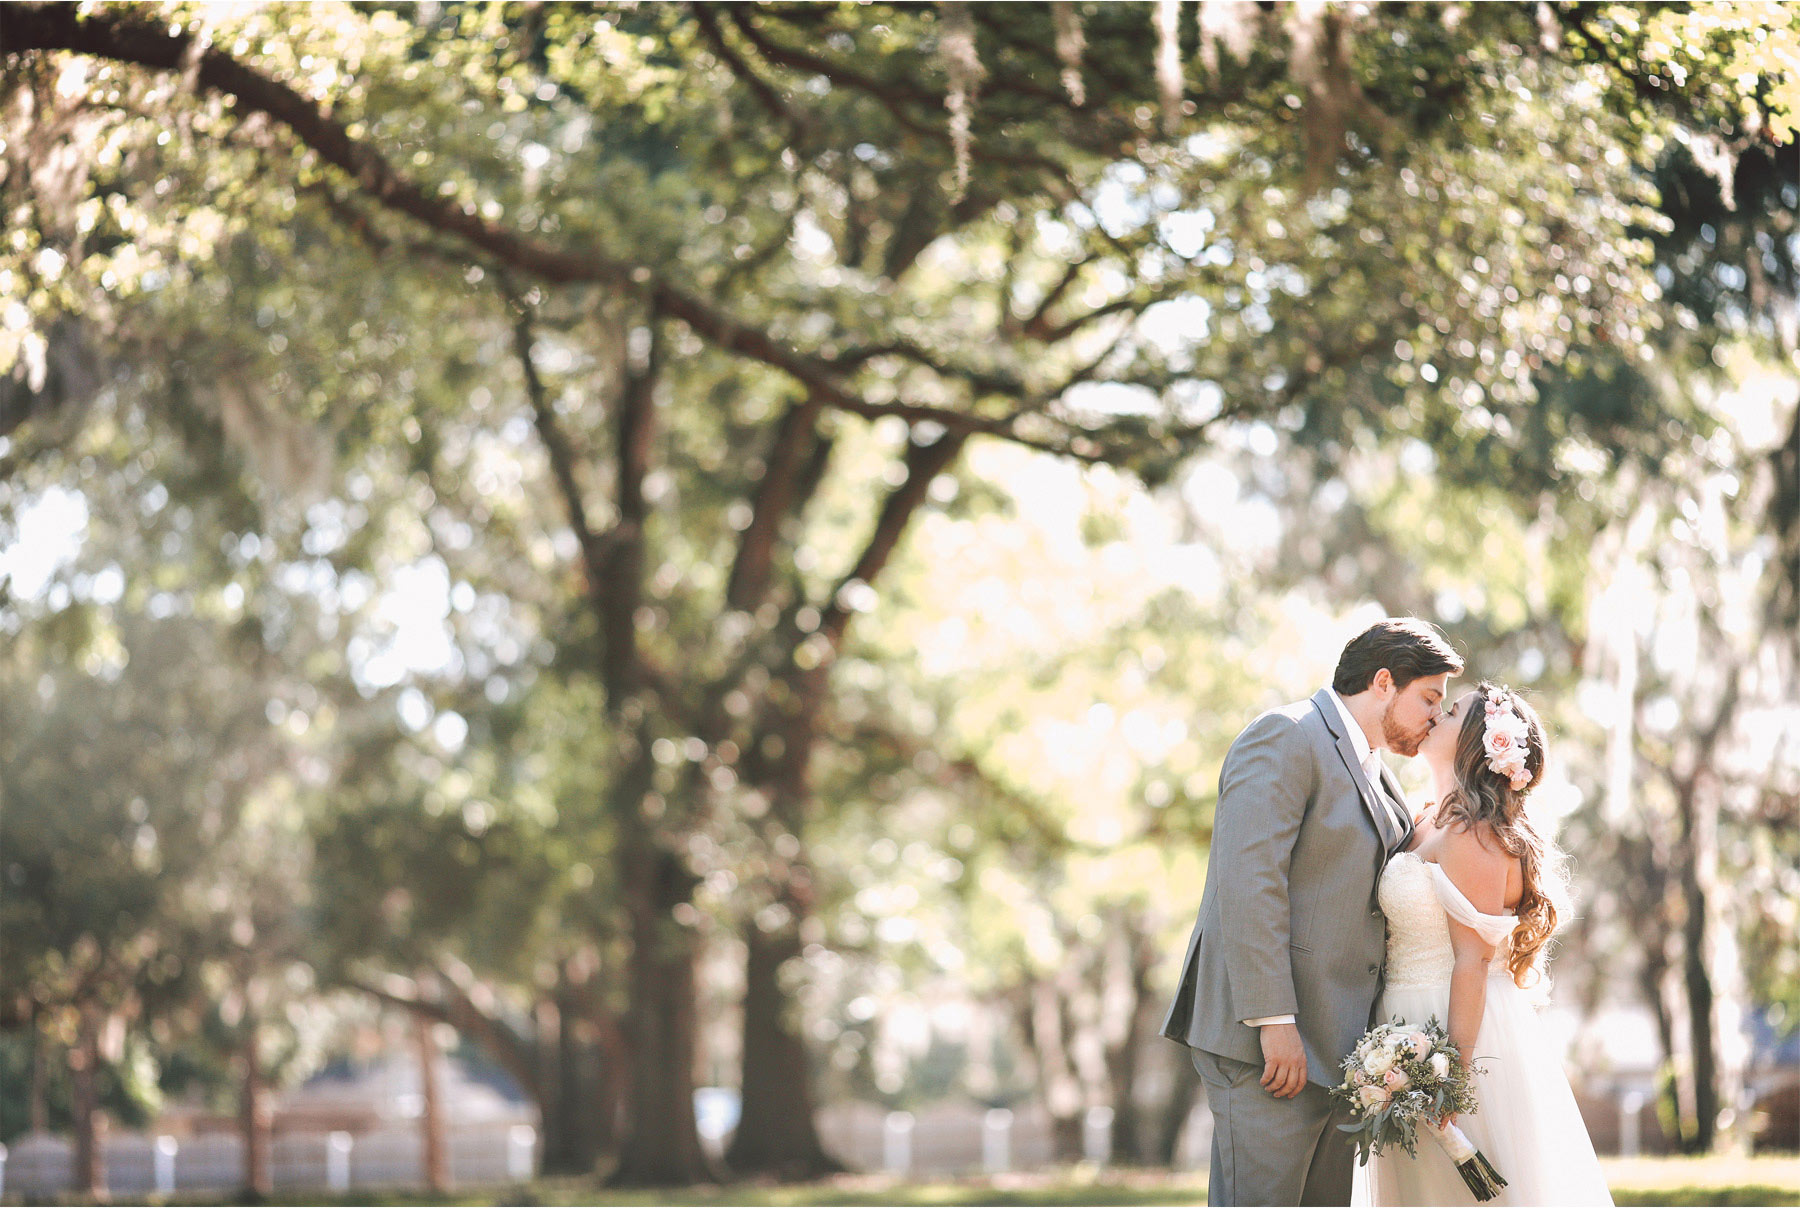 20-Brandon-Florida-Wedding-Photographer-by-Andrew-Vick-Photography-Casa-Lantana-Spring-Bride-Groom-Kiss-Flower-Crown-Vintage-Kristianna-and-Ben.jpg